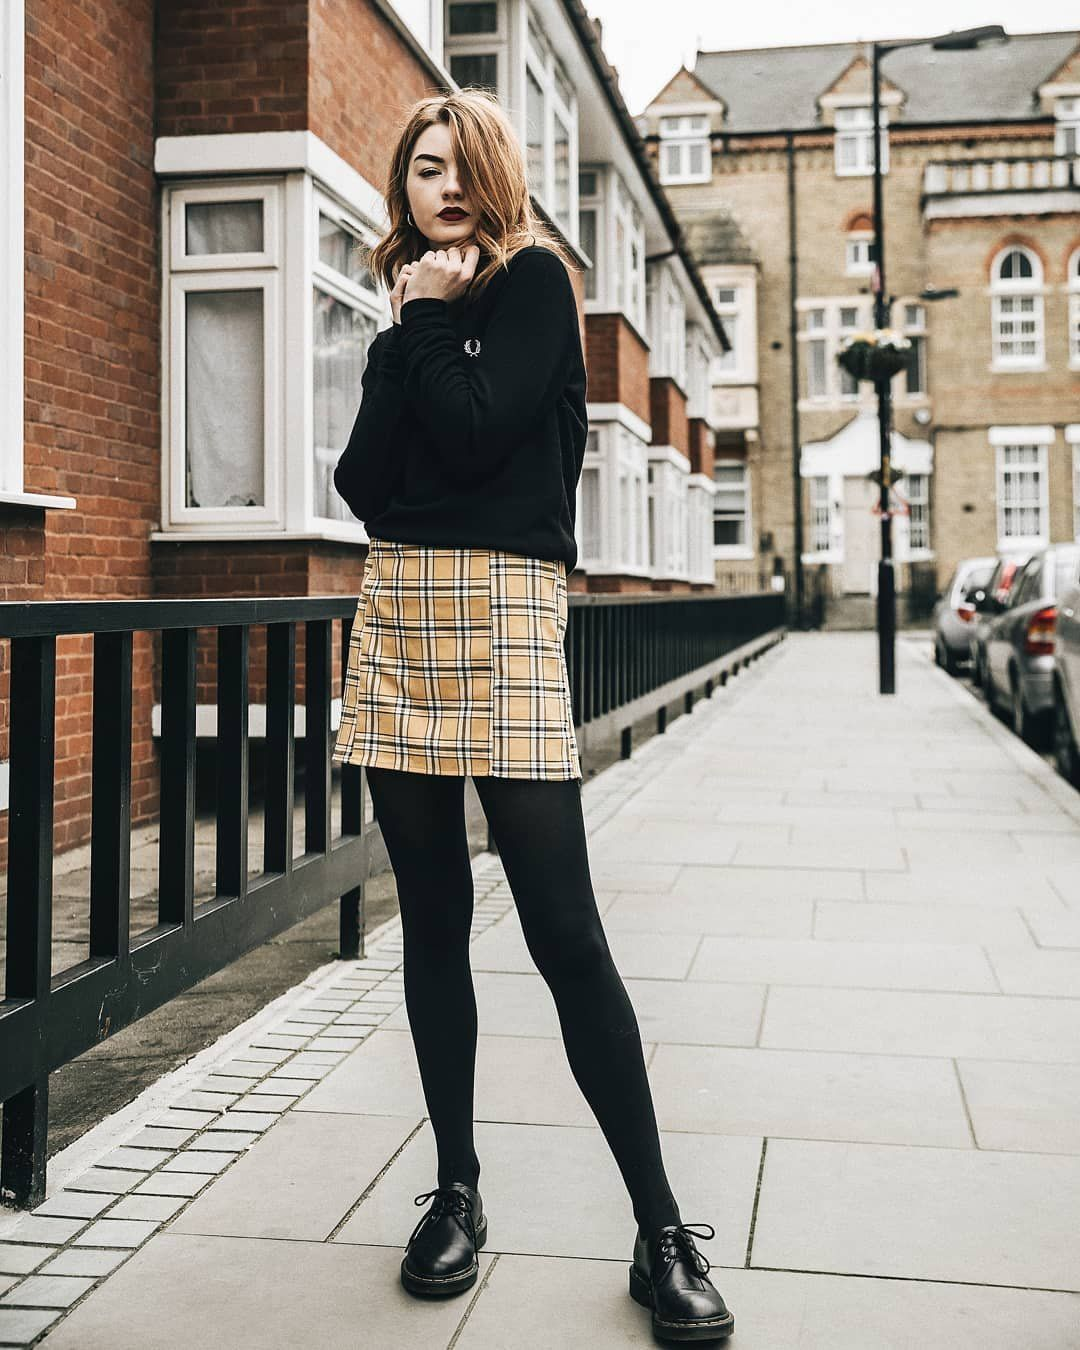 2468b2ee8ce3 UO Mustard Yellow Checked Pelmet Skirt | Urban Outfitters | Women's |  Bottoms | Skirts via @hannahlouisef #UOEurope #UrbanOutfittersEU #UOonYou